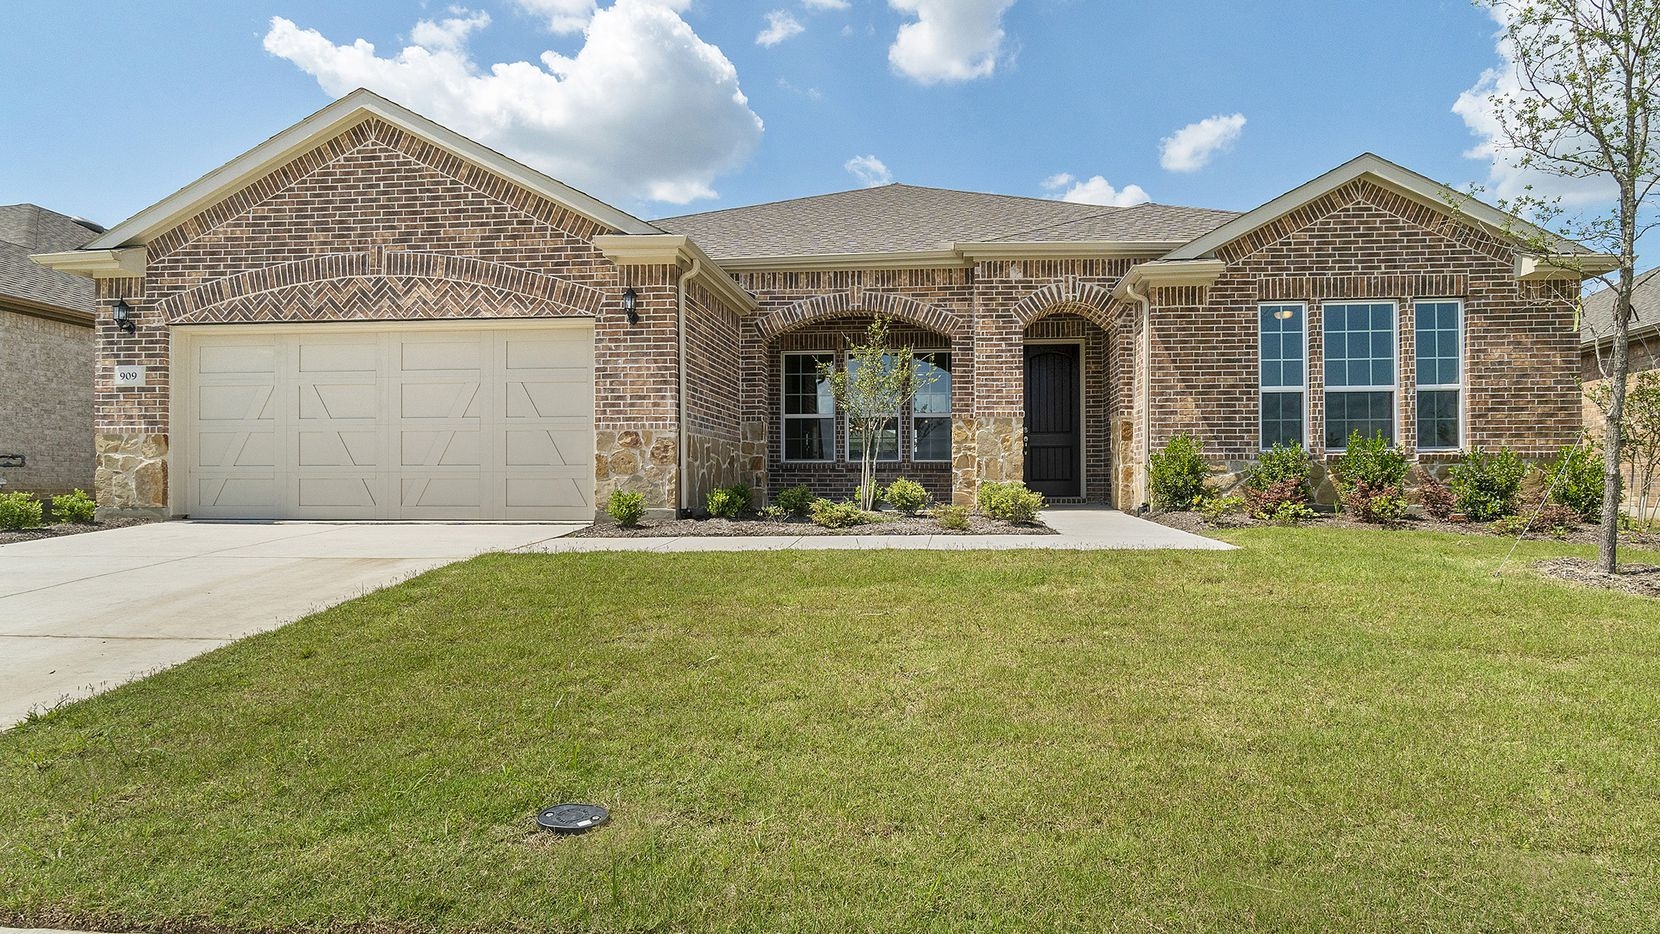 Del Webb has homes that are move-in ready and underway in Frisco, McKinney and Little Elm.